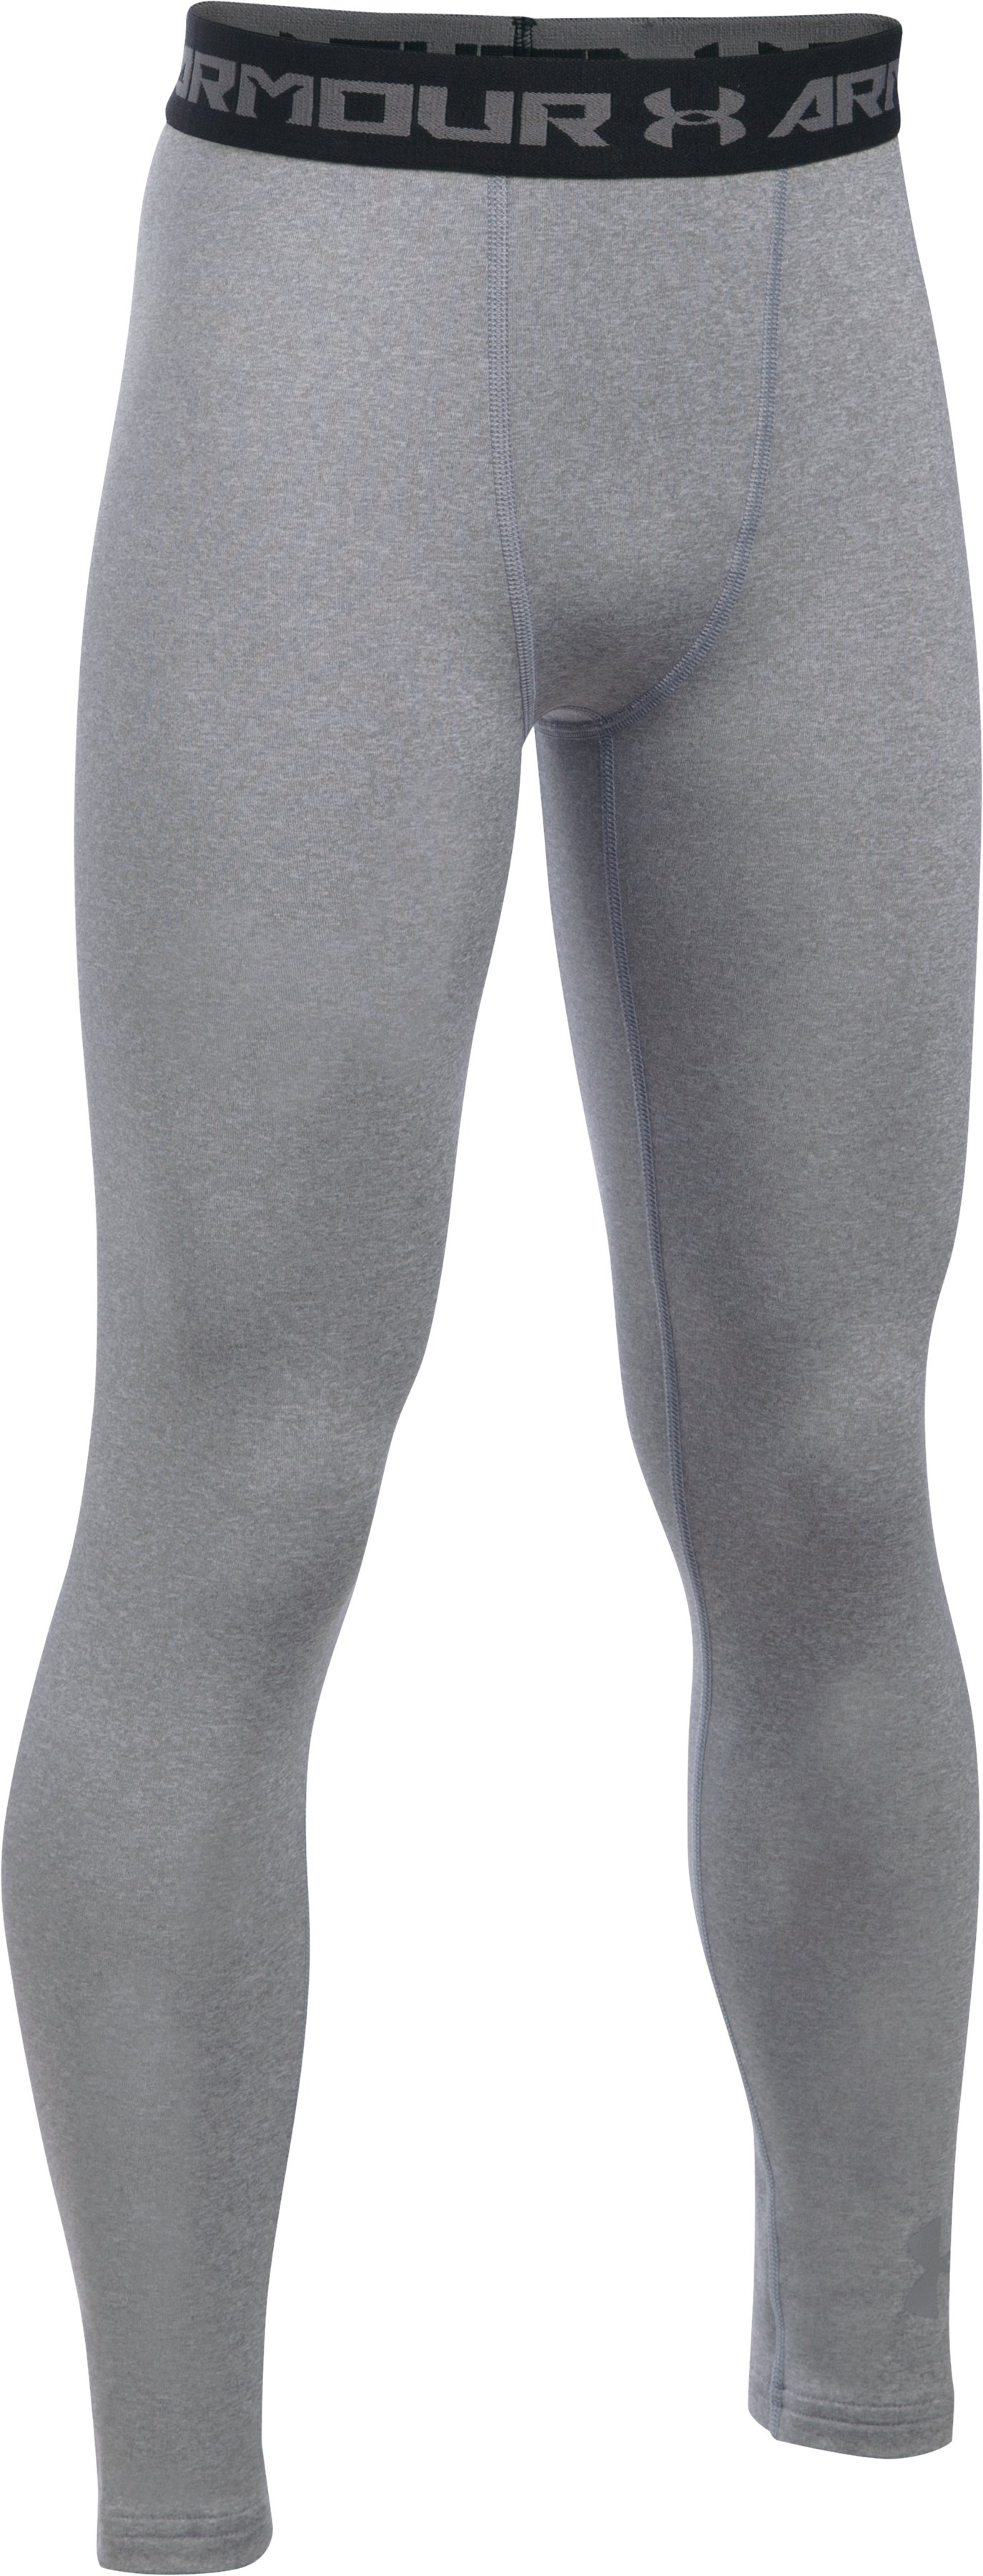 Boys' UA ColdGear® Armour Leggings, True Gray Heather, zoomed image